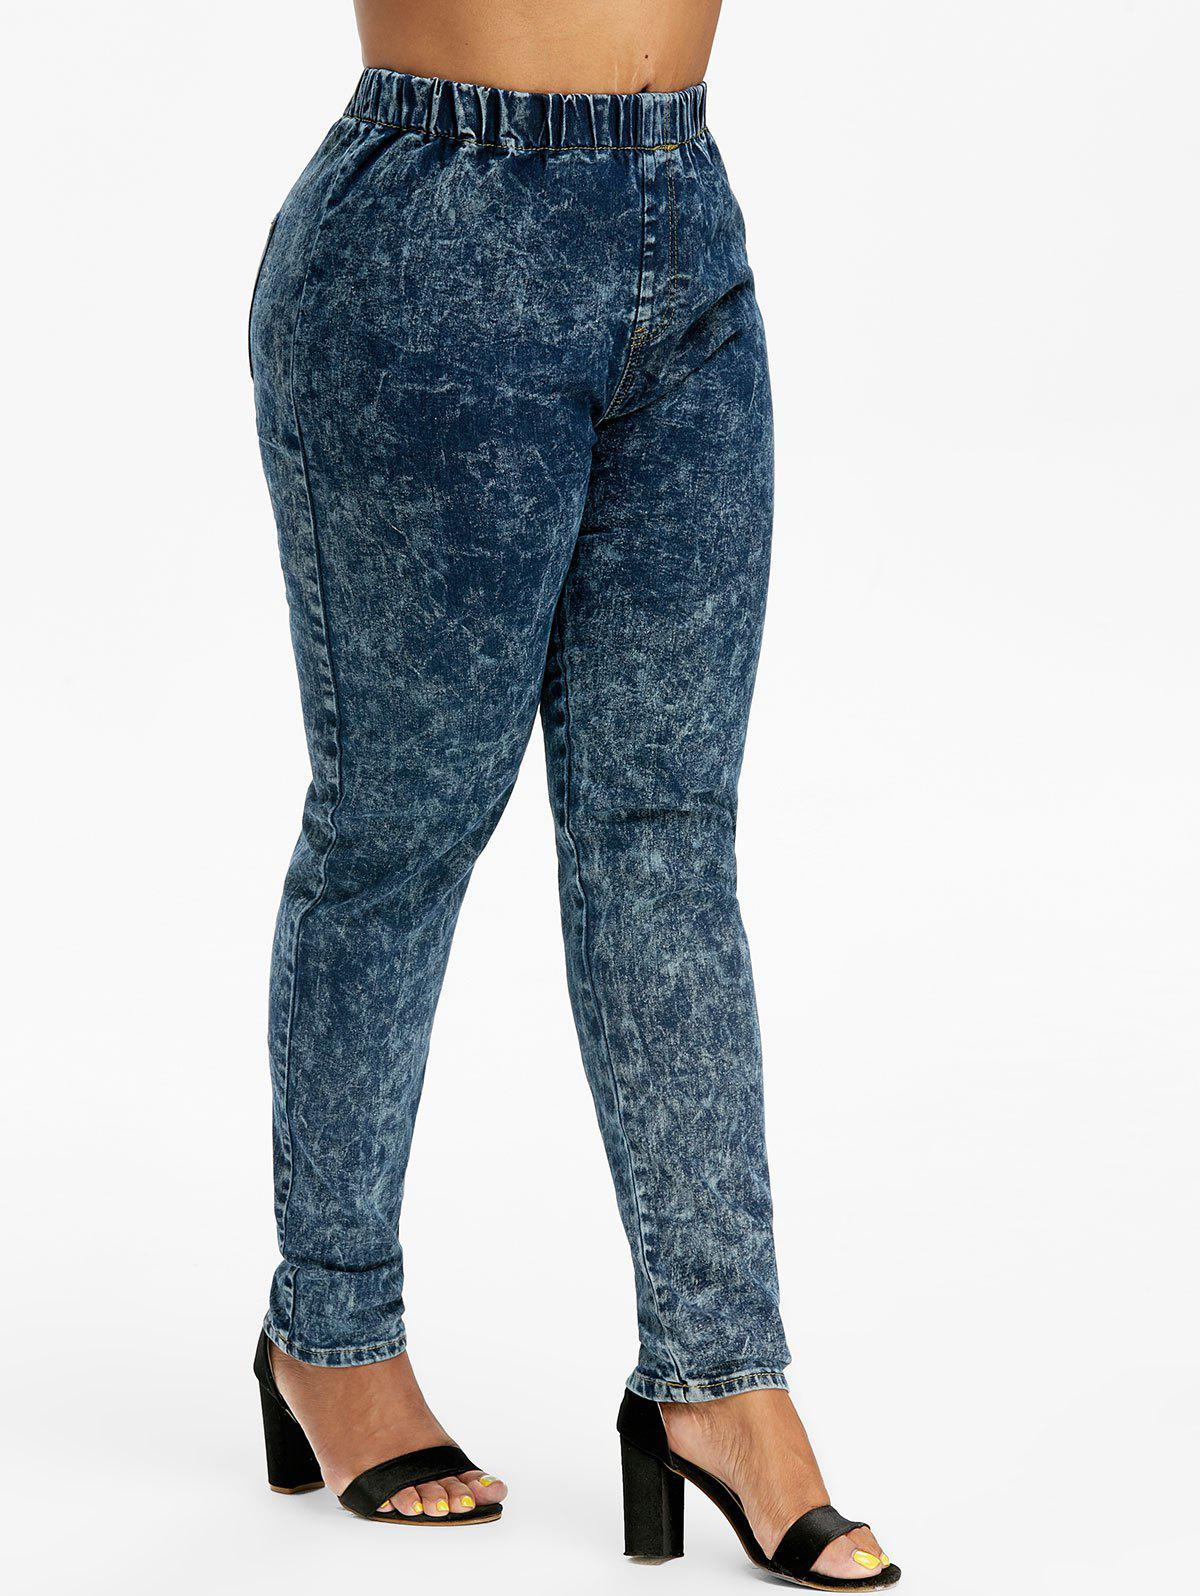 Best Plus Size High Waisted Tie Dye Jeans